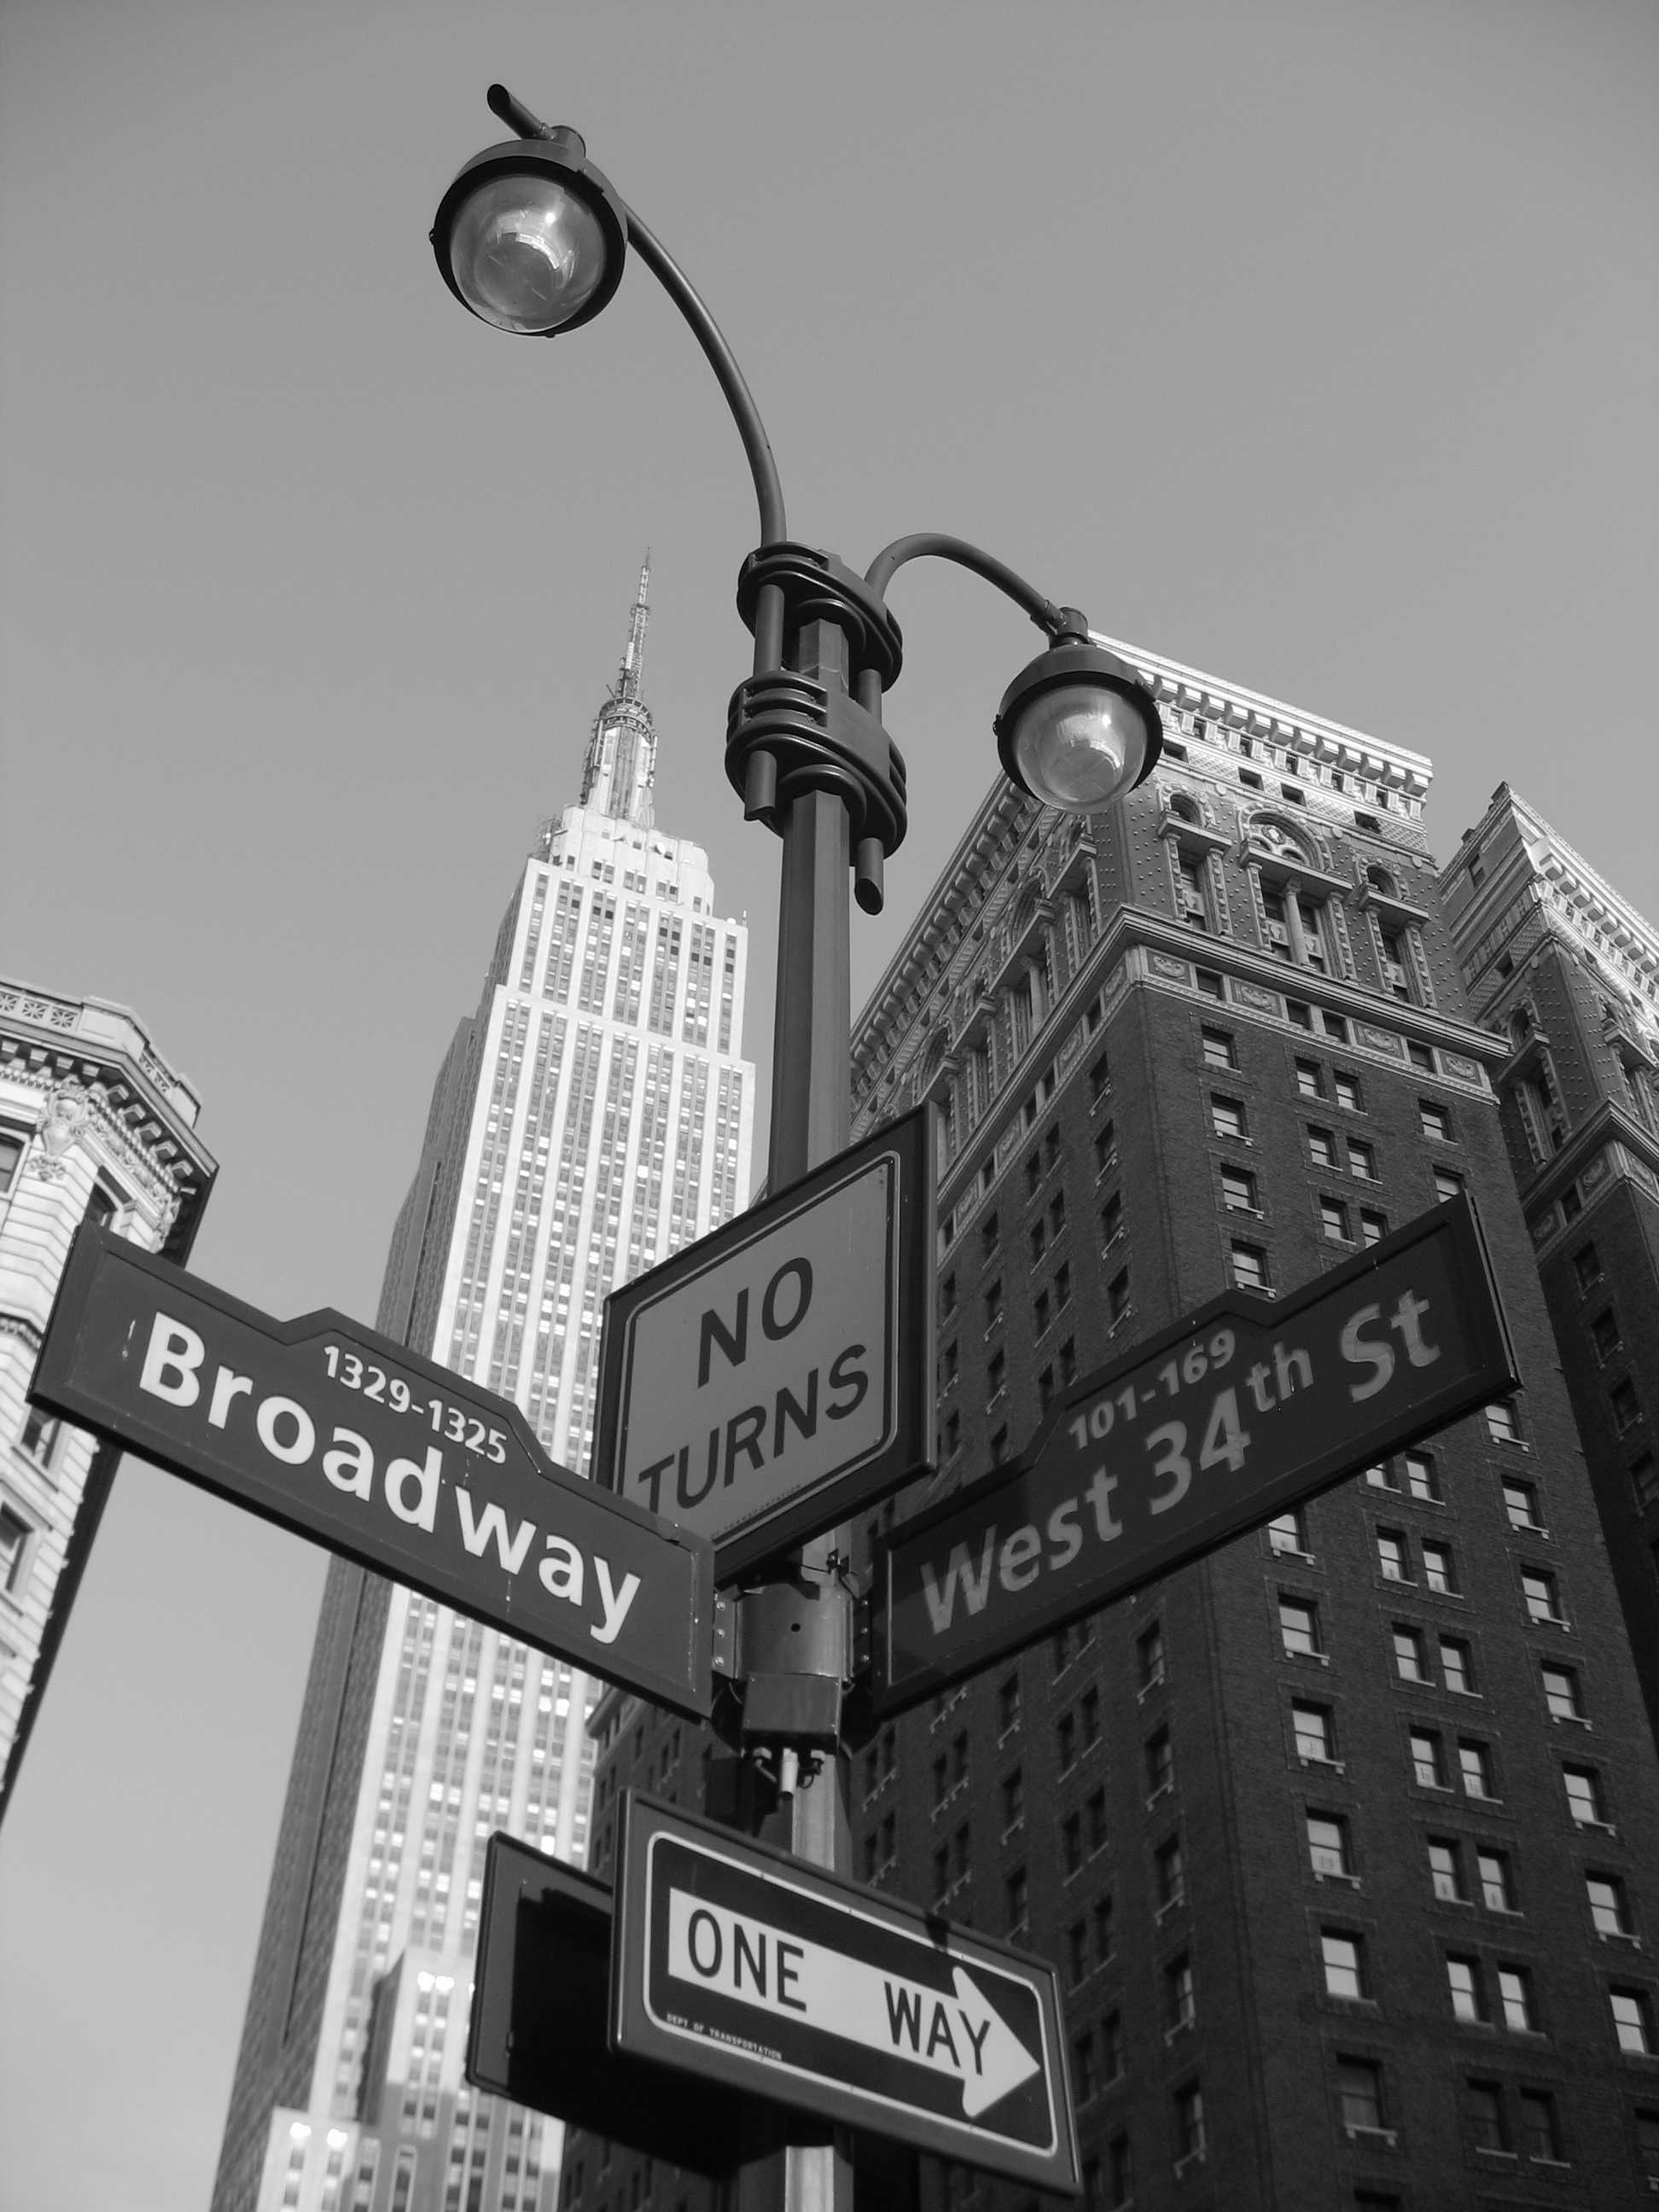 Street Signs and Buildings